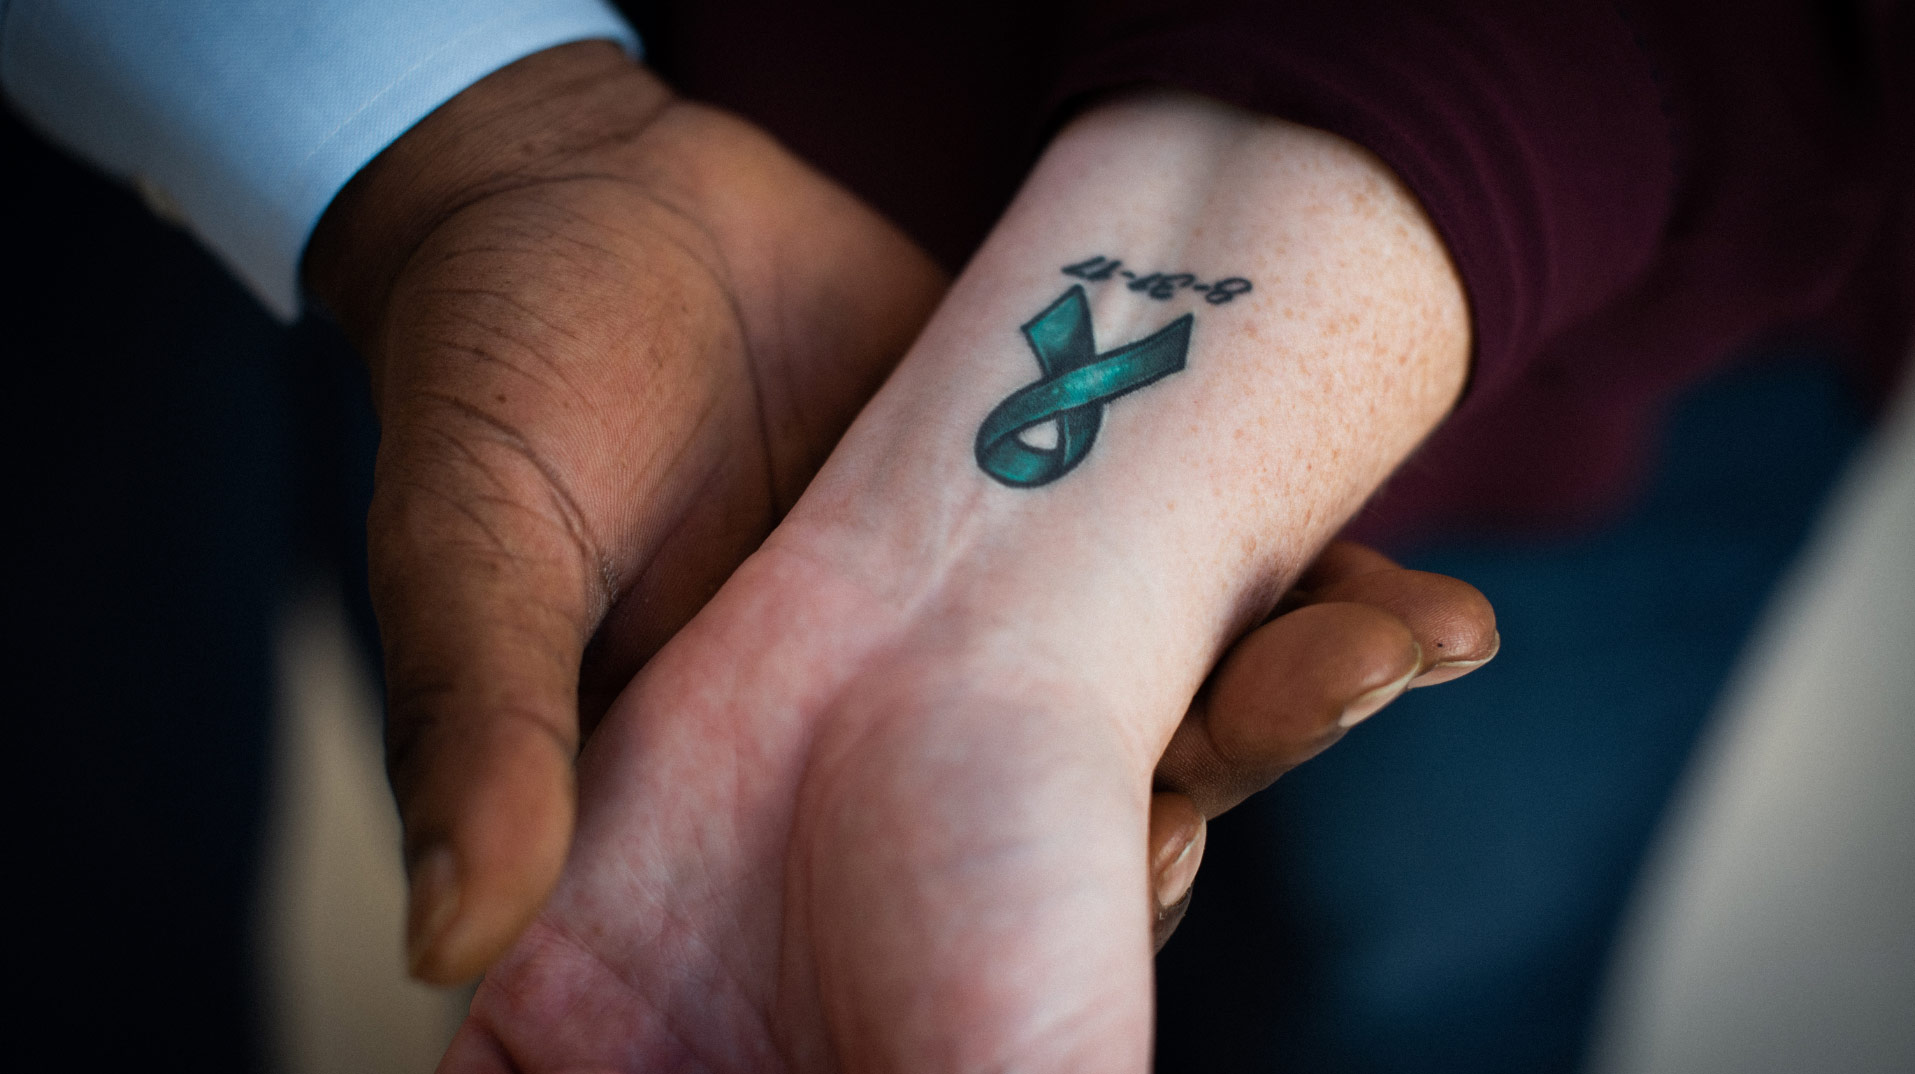 A close-up of the inside of Marci's wrist, which features a tattoo of a green ribbon and the date 8-31-17. Ivan is holding Marci's wrist in his hand.